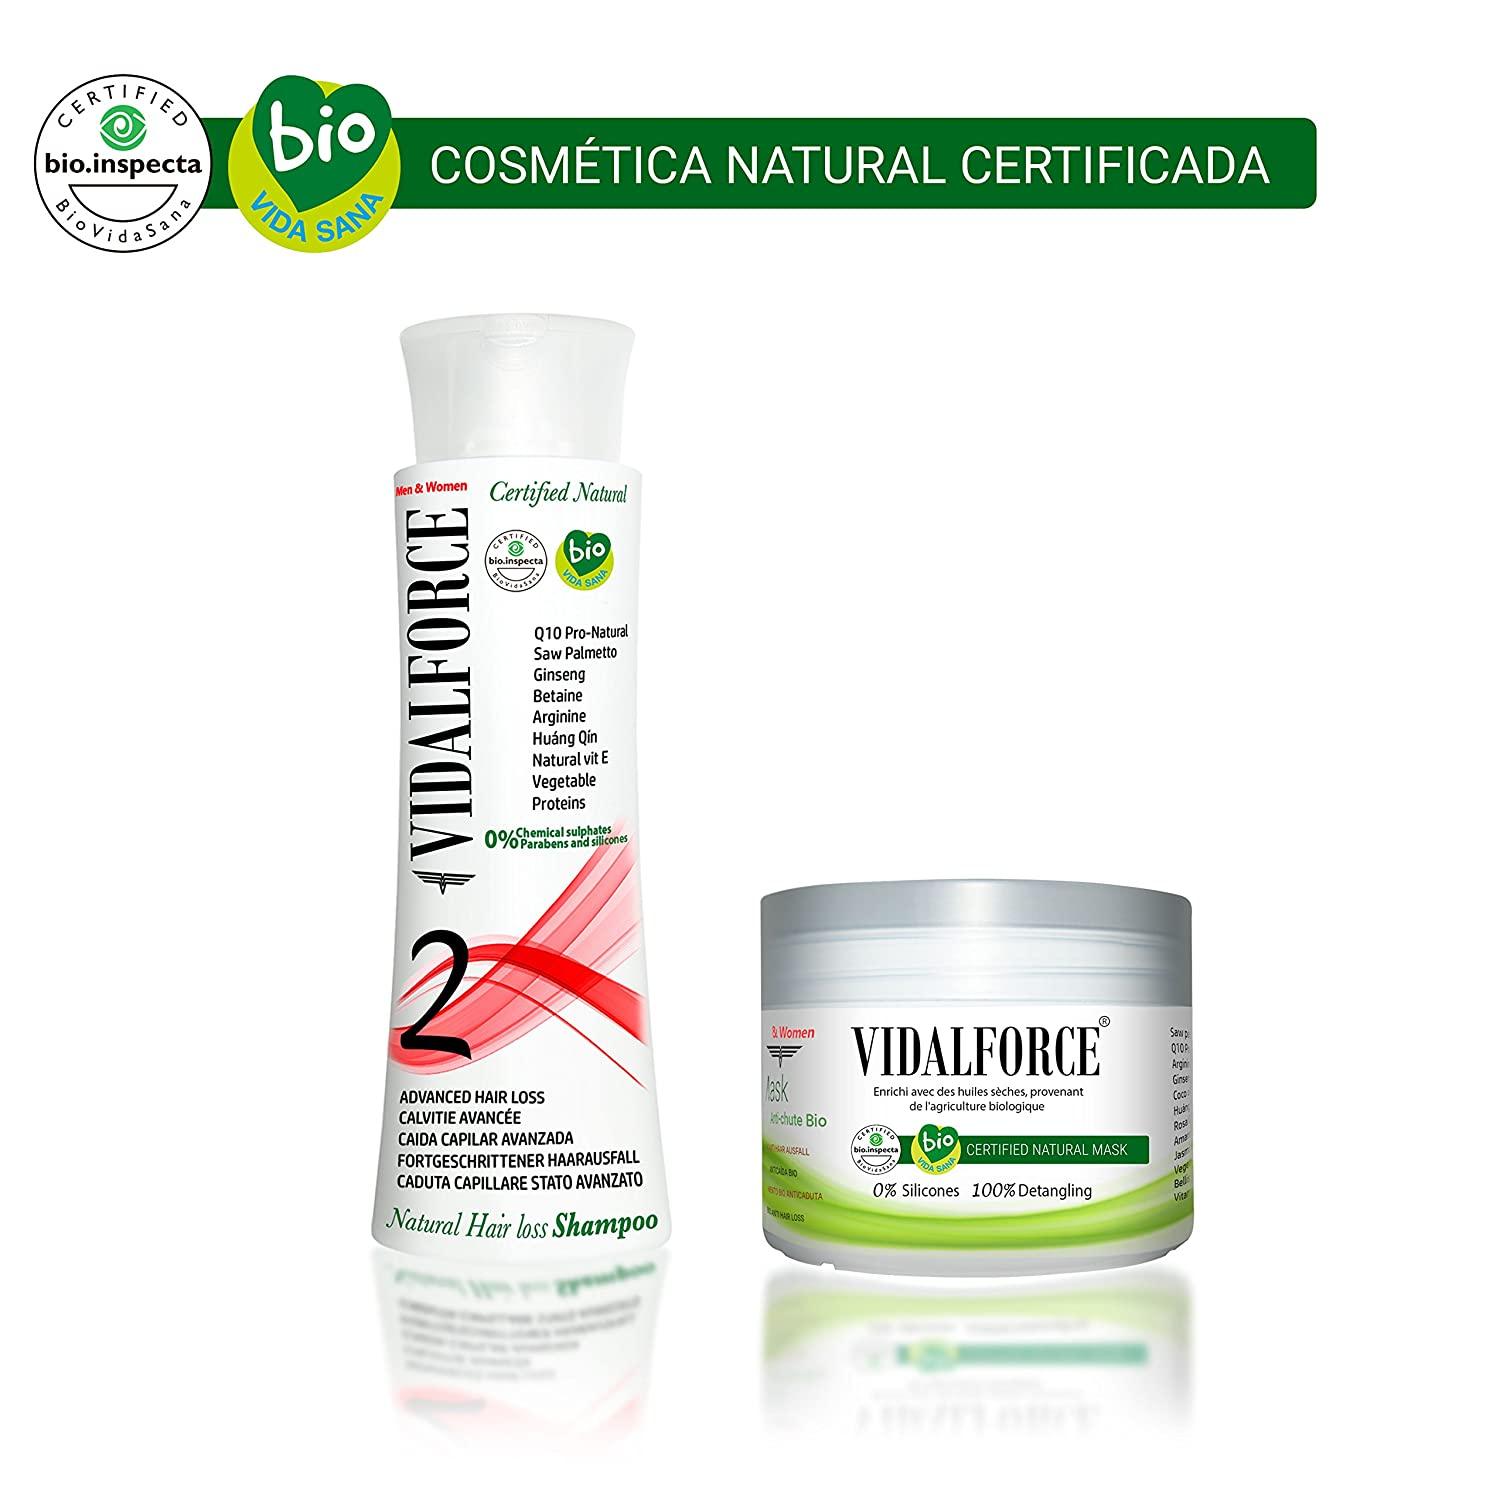 VidalForce Champu V1 Anti-caida Natural Certificado Primeros Sintomas + Volumen Instantaneo: Amazon.es: Belleza